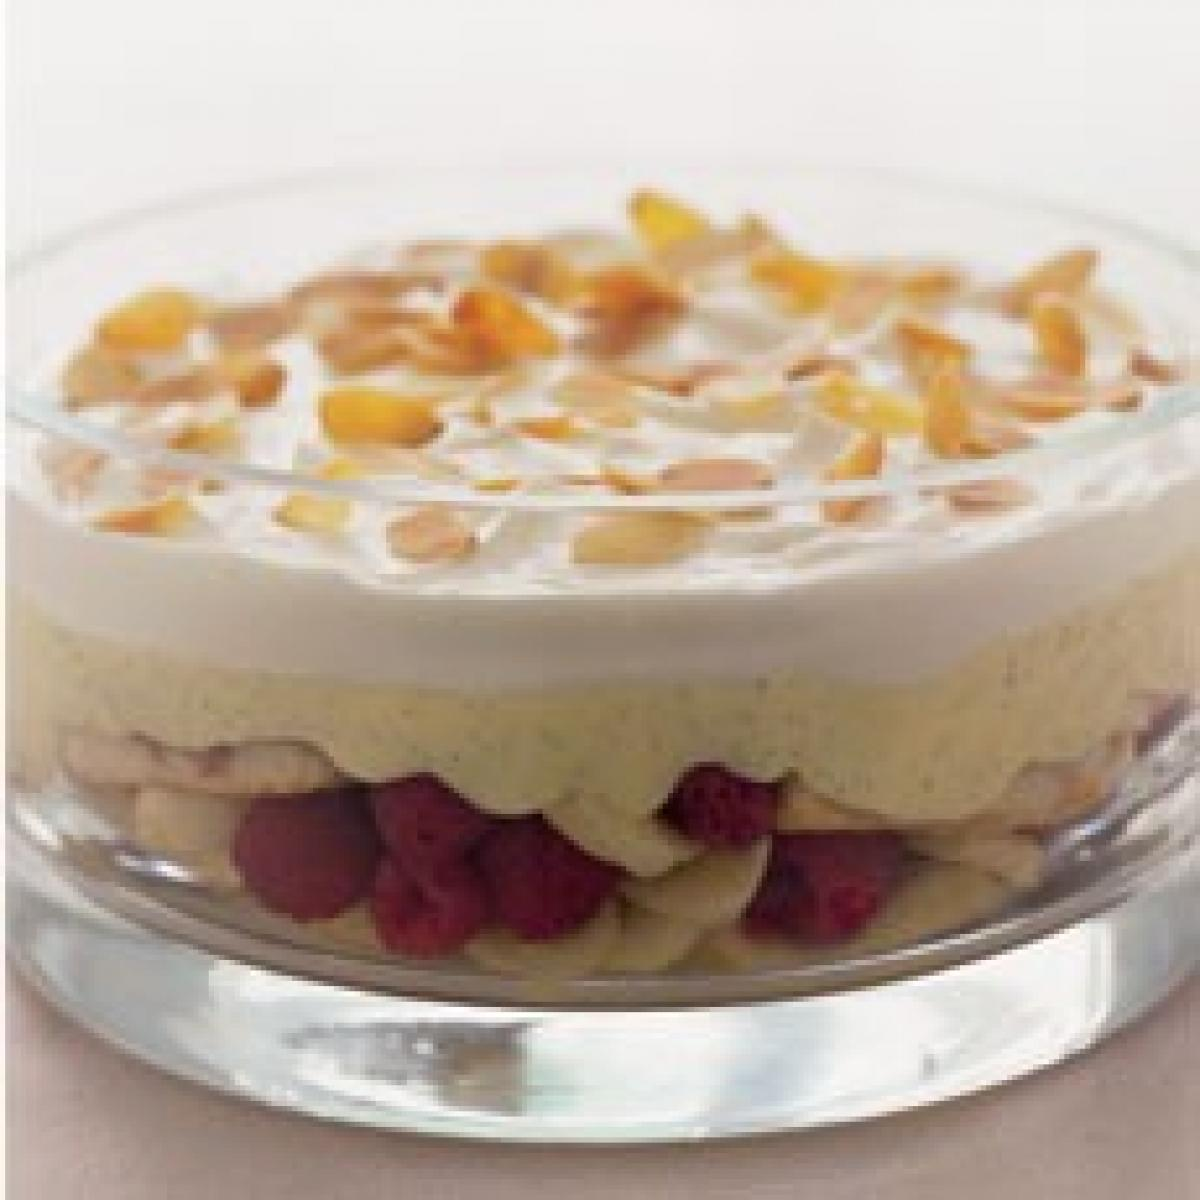 A picture of Delia's Traditional Raspberry Trifle recipe